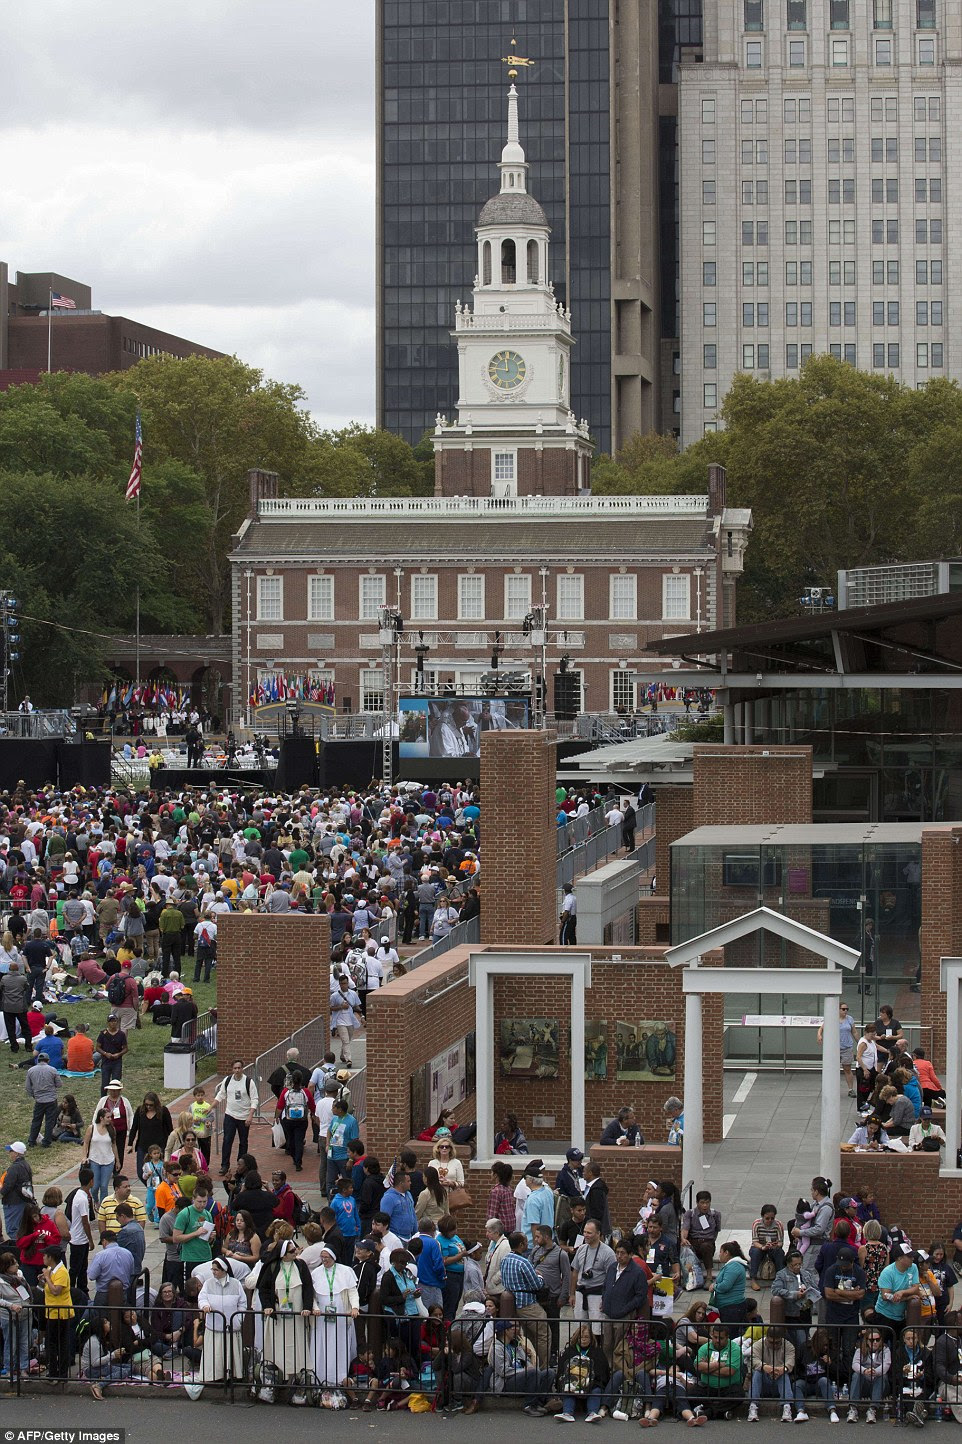 Crowds gathered on Independence Mall in Philadelphia prior to Pope Francis' speech, where he  discussed immigration